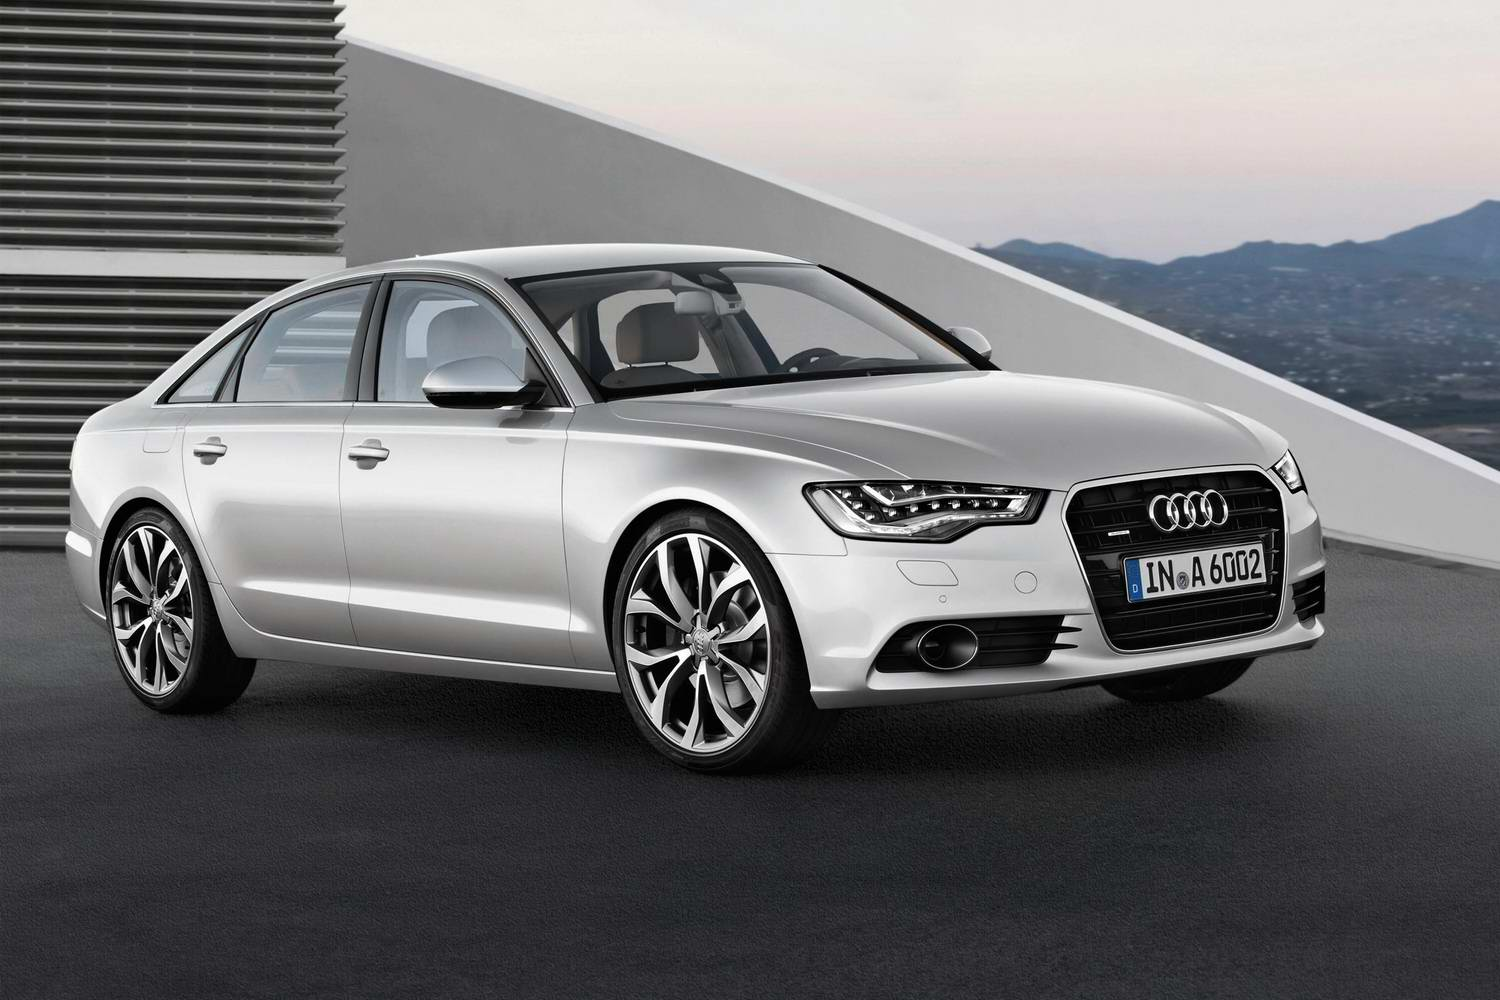 Audi A6 Mk4 (2011-2018) used car buying guide | CompleteCar.ie